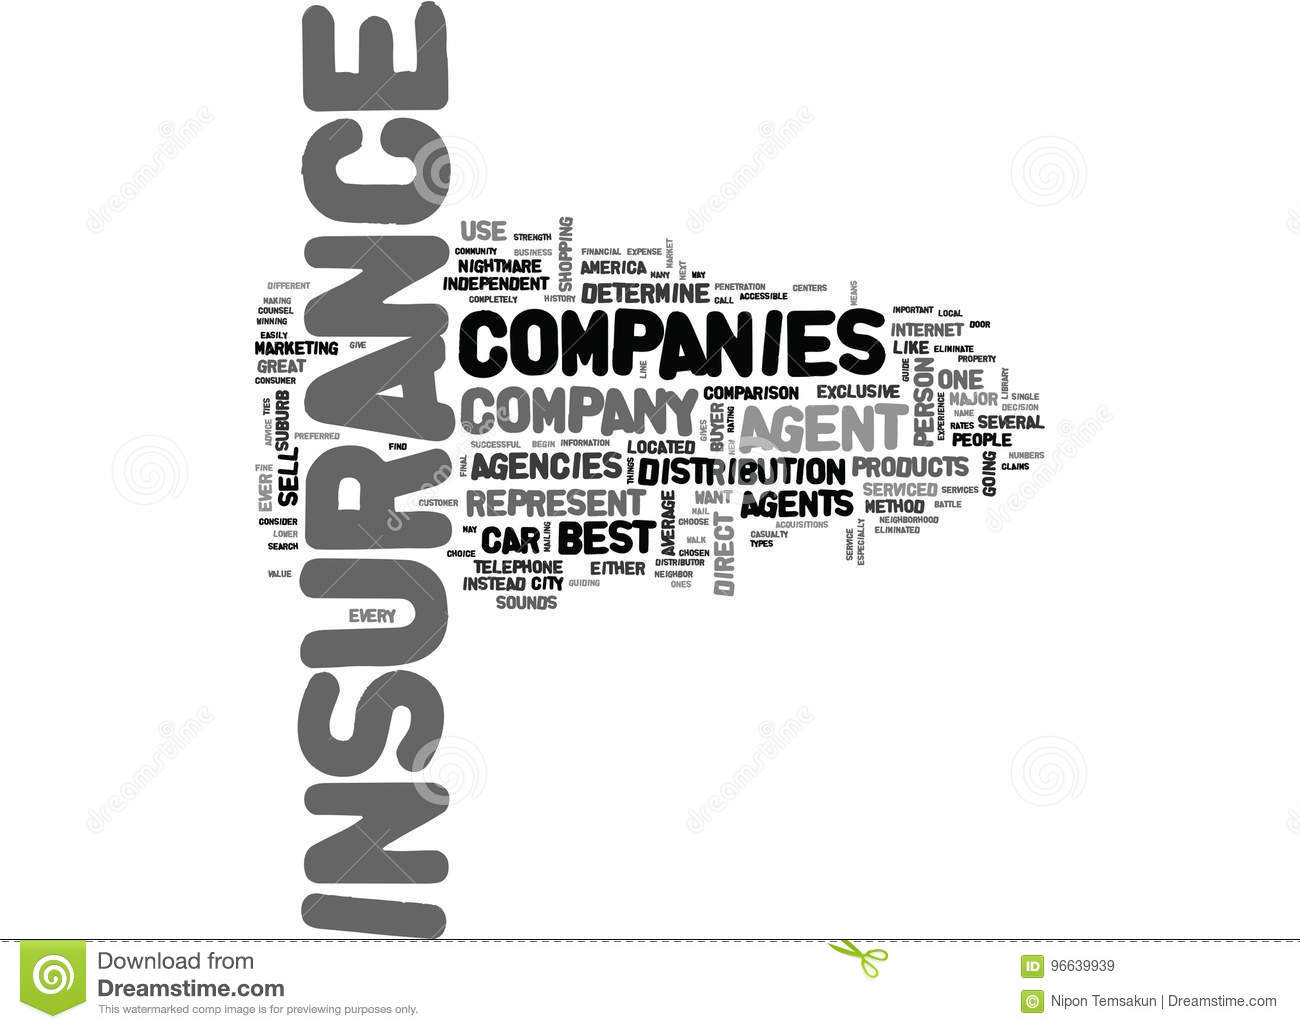 Best Car Insurance Company, wie Person To Choose Word Cloud ist